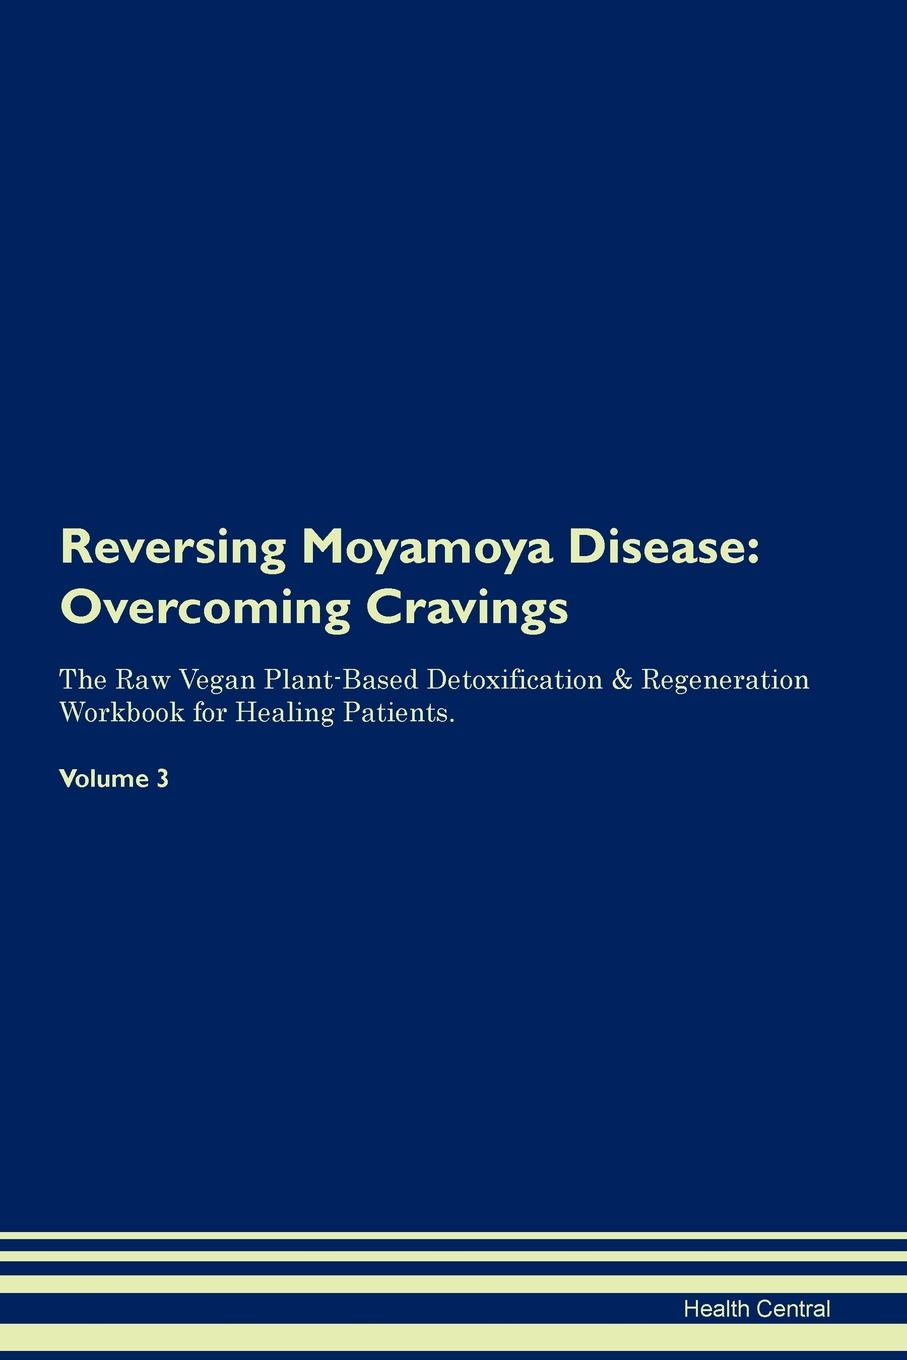 Фото - Health Central Reversing Moyamoya Disease. Overcoming Cravings The Raw Vegan Plant-Based Detoxification & Regeneration Workbook for Healing Patients. Volume 3 health central reversing extramammary paget s disease overcoming cravings the raw vegan plant based detoxification regeneration workbook for healing patients volume 3